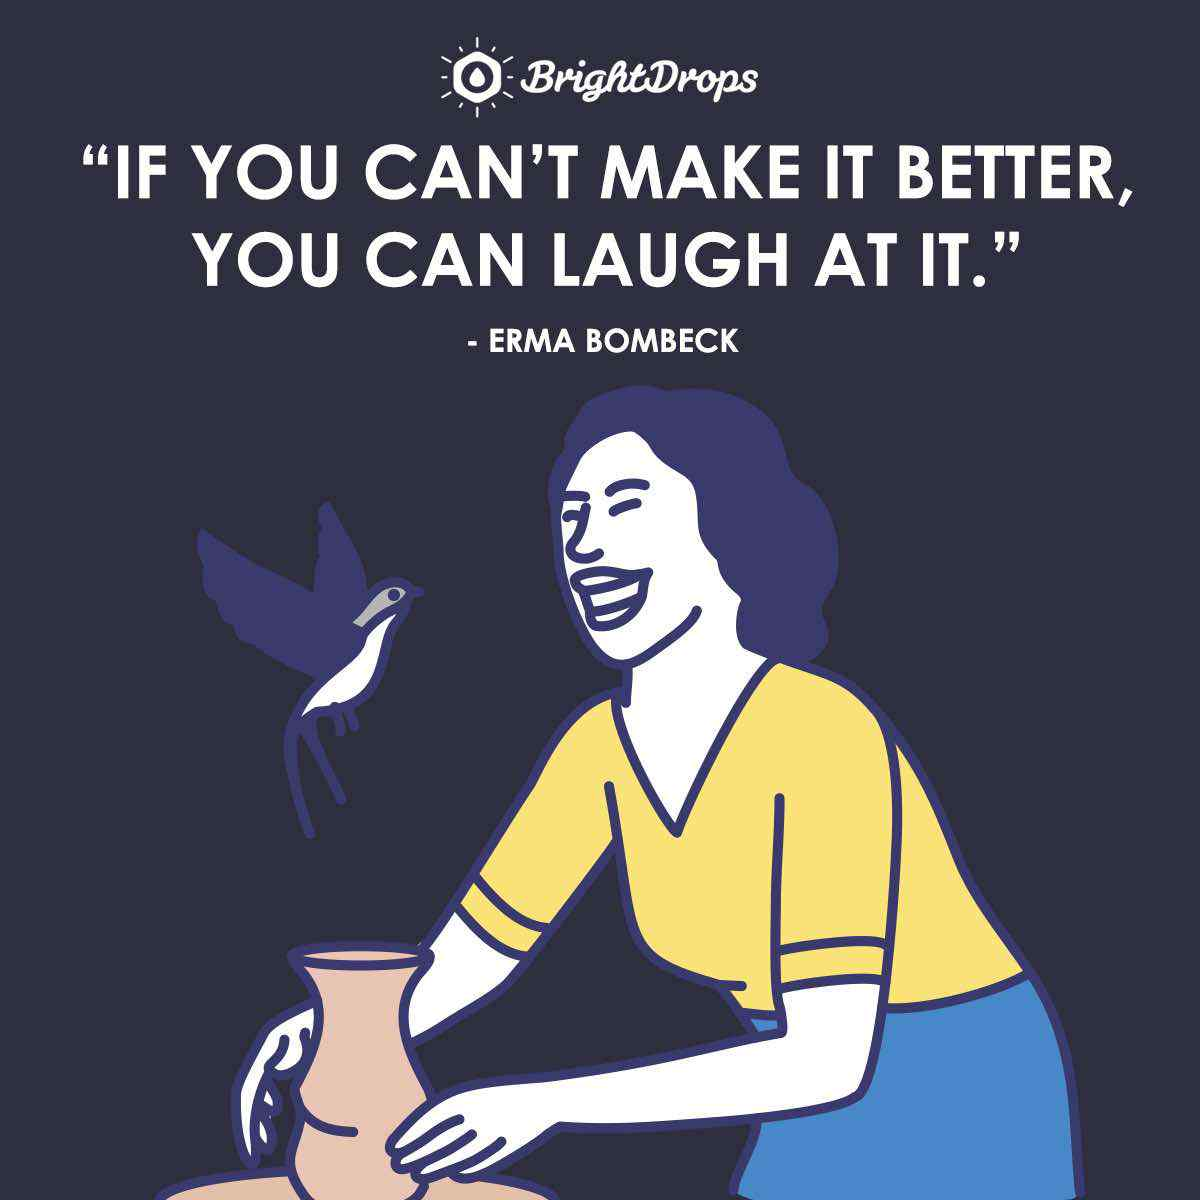 """If you can't make it better, you can laugh at it."" ~ Erma Bombeck"